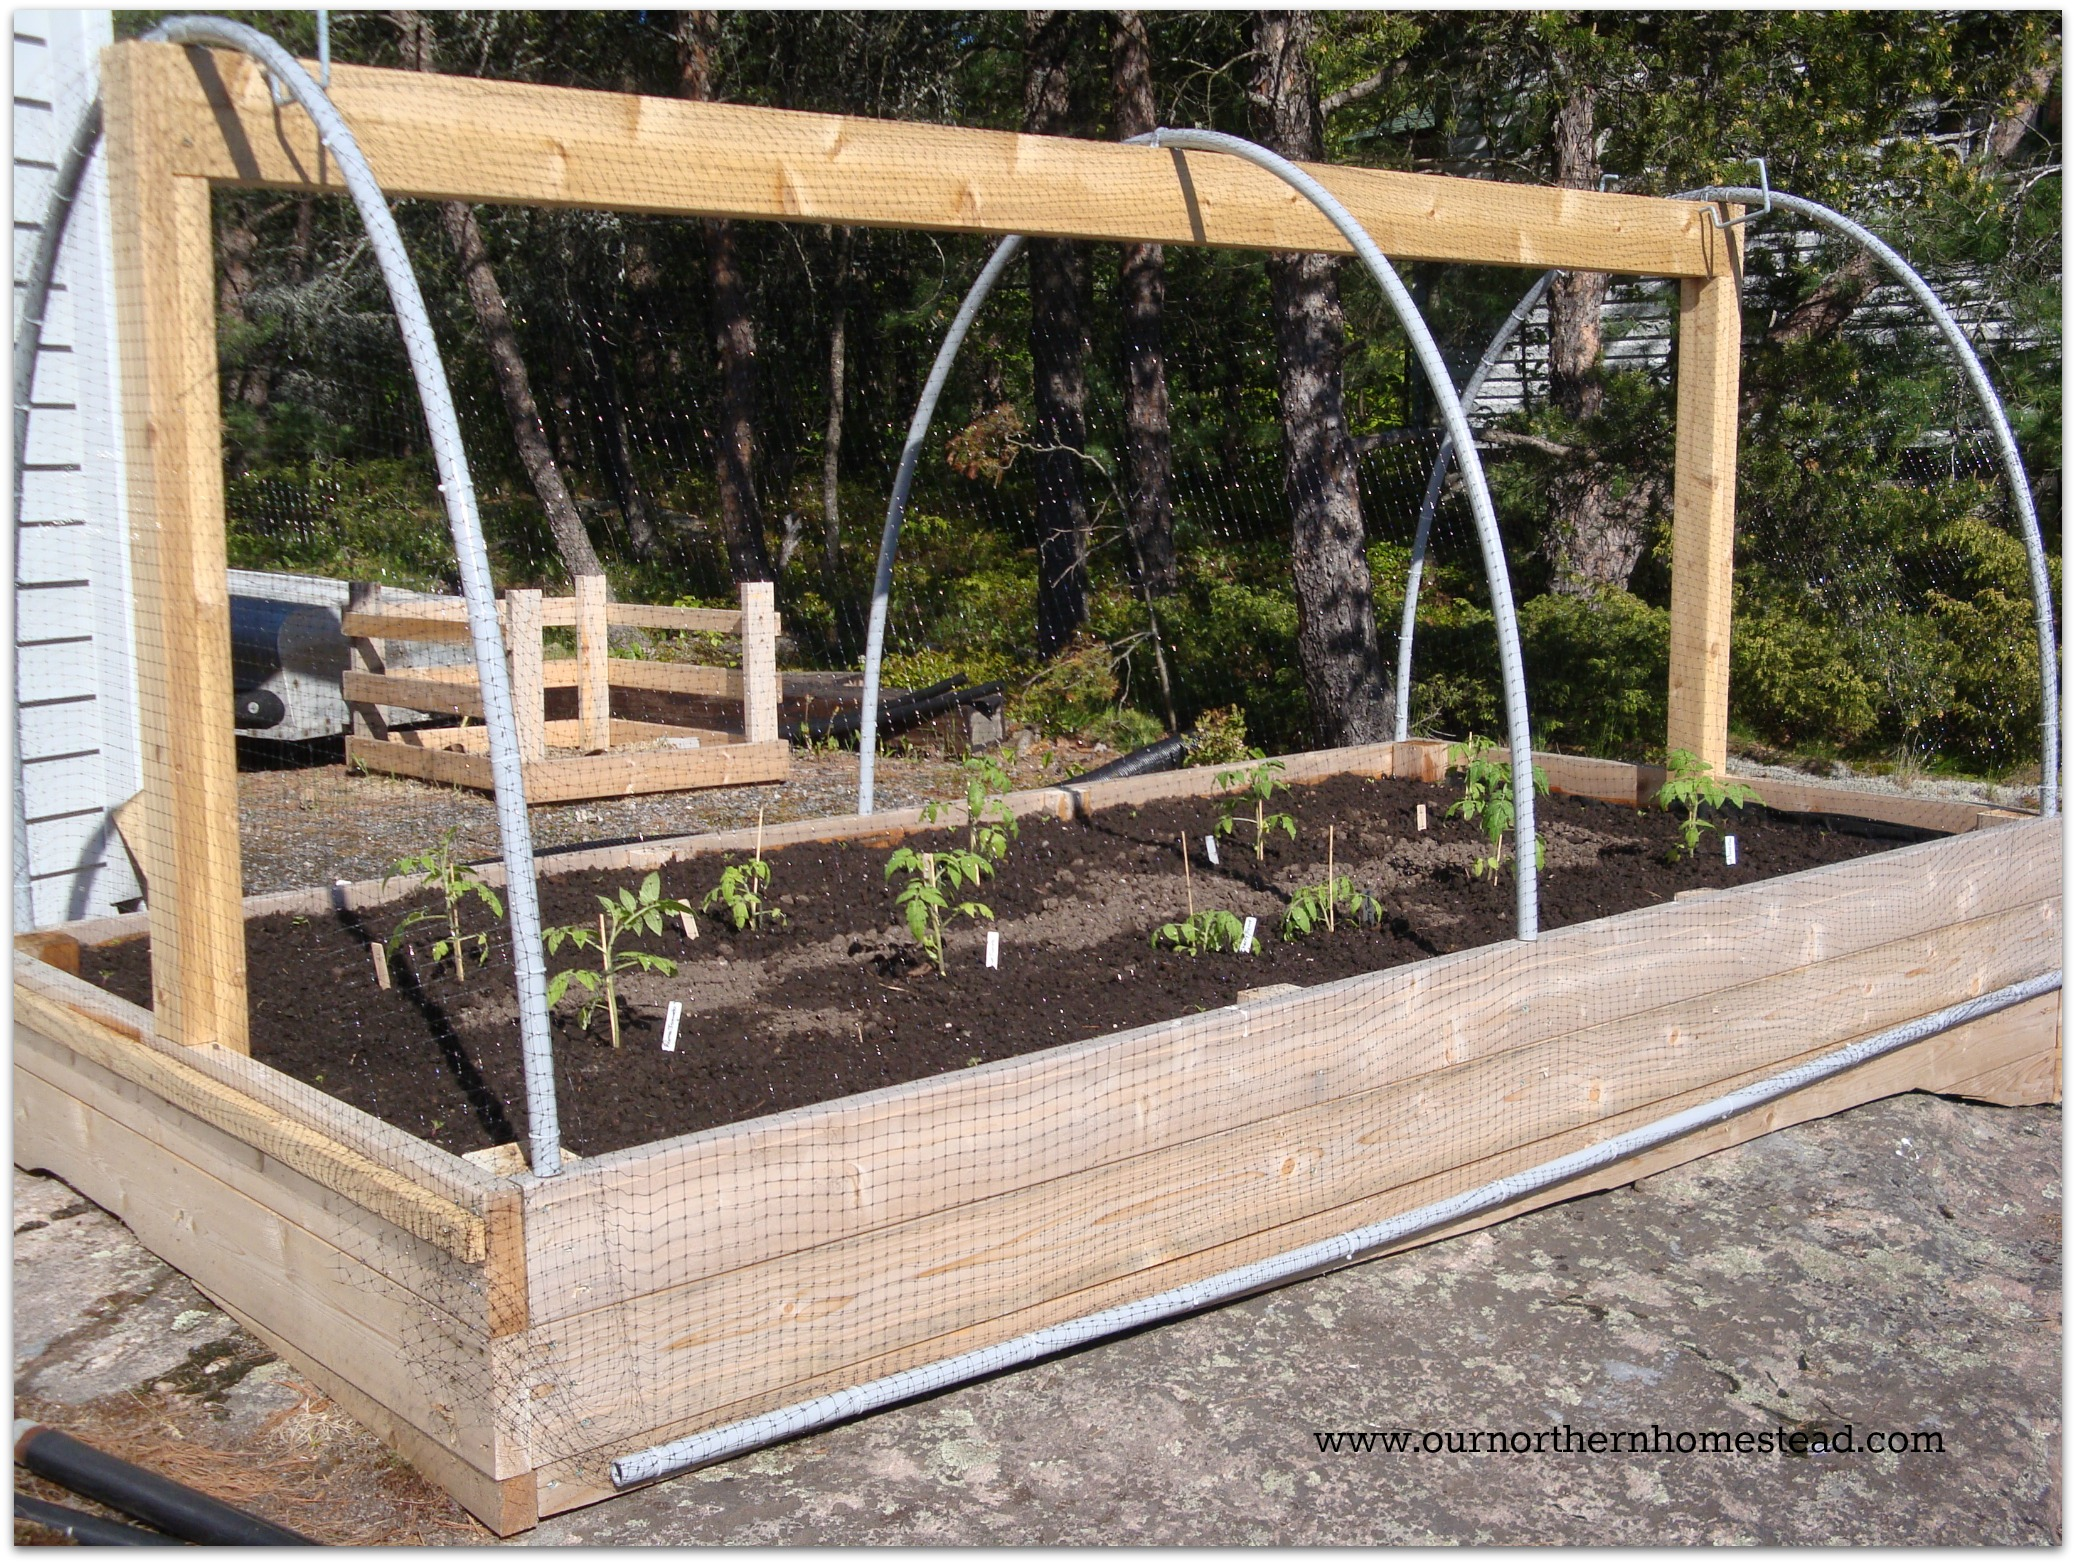 Our northern homestead - Deer proof vegetable garden ideas ...